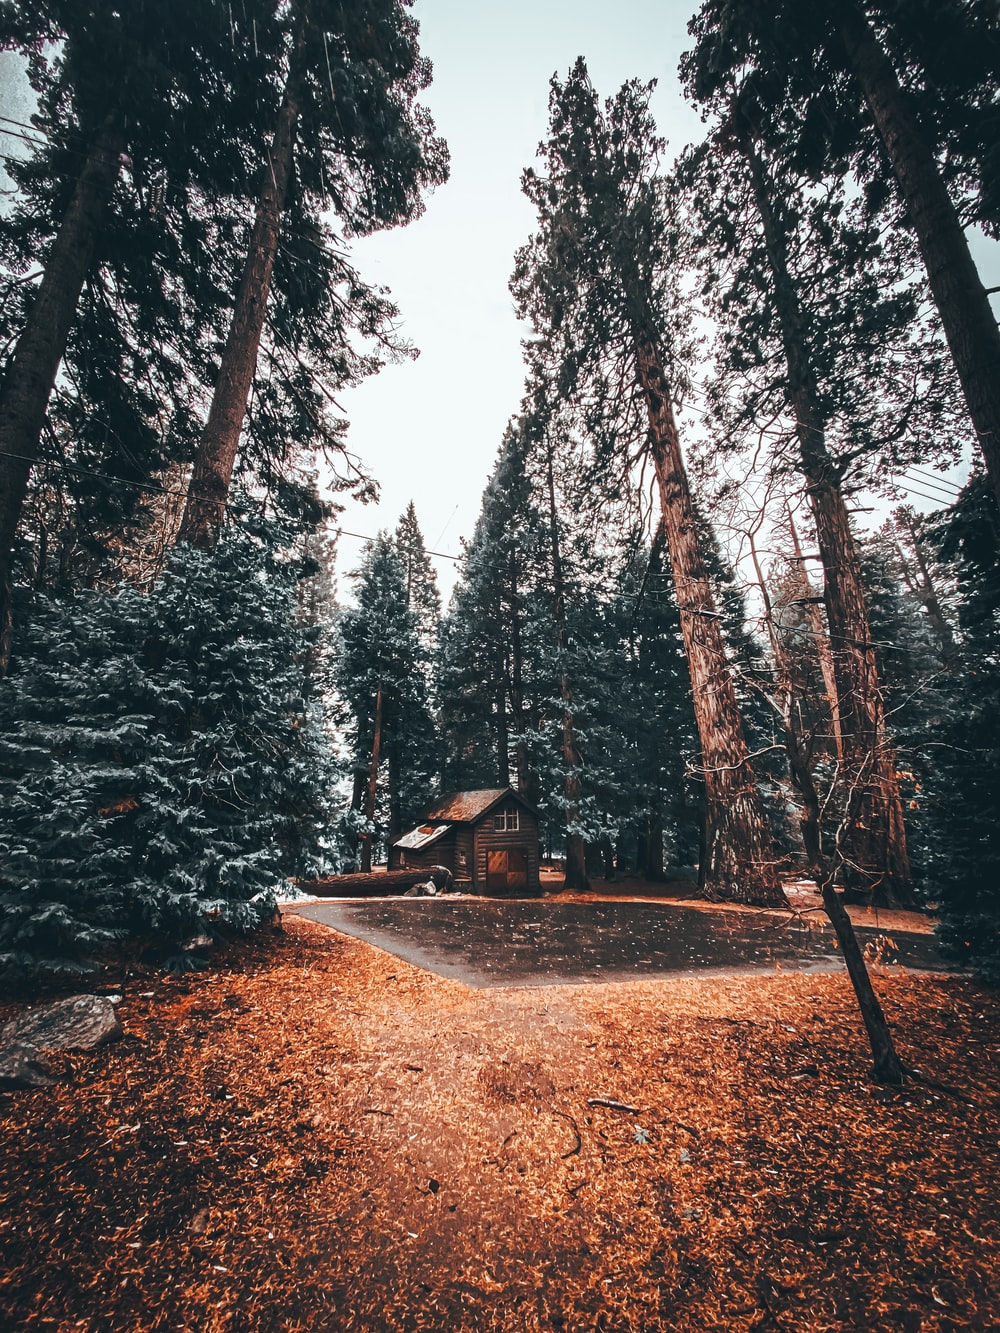 brown wooden house in the middle of the forest during daytime